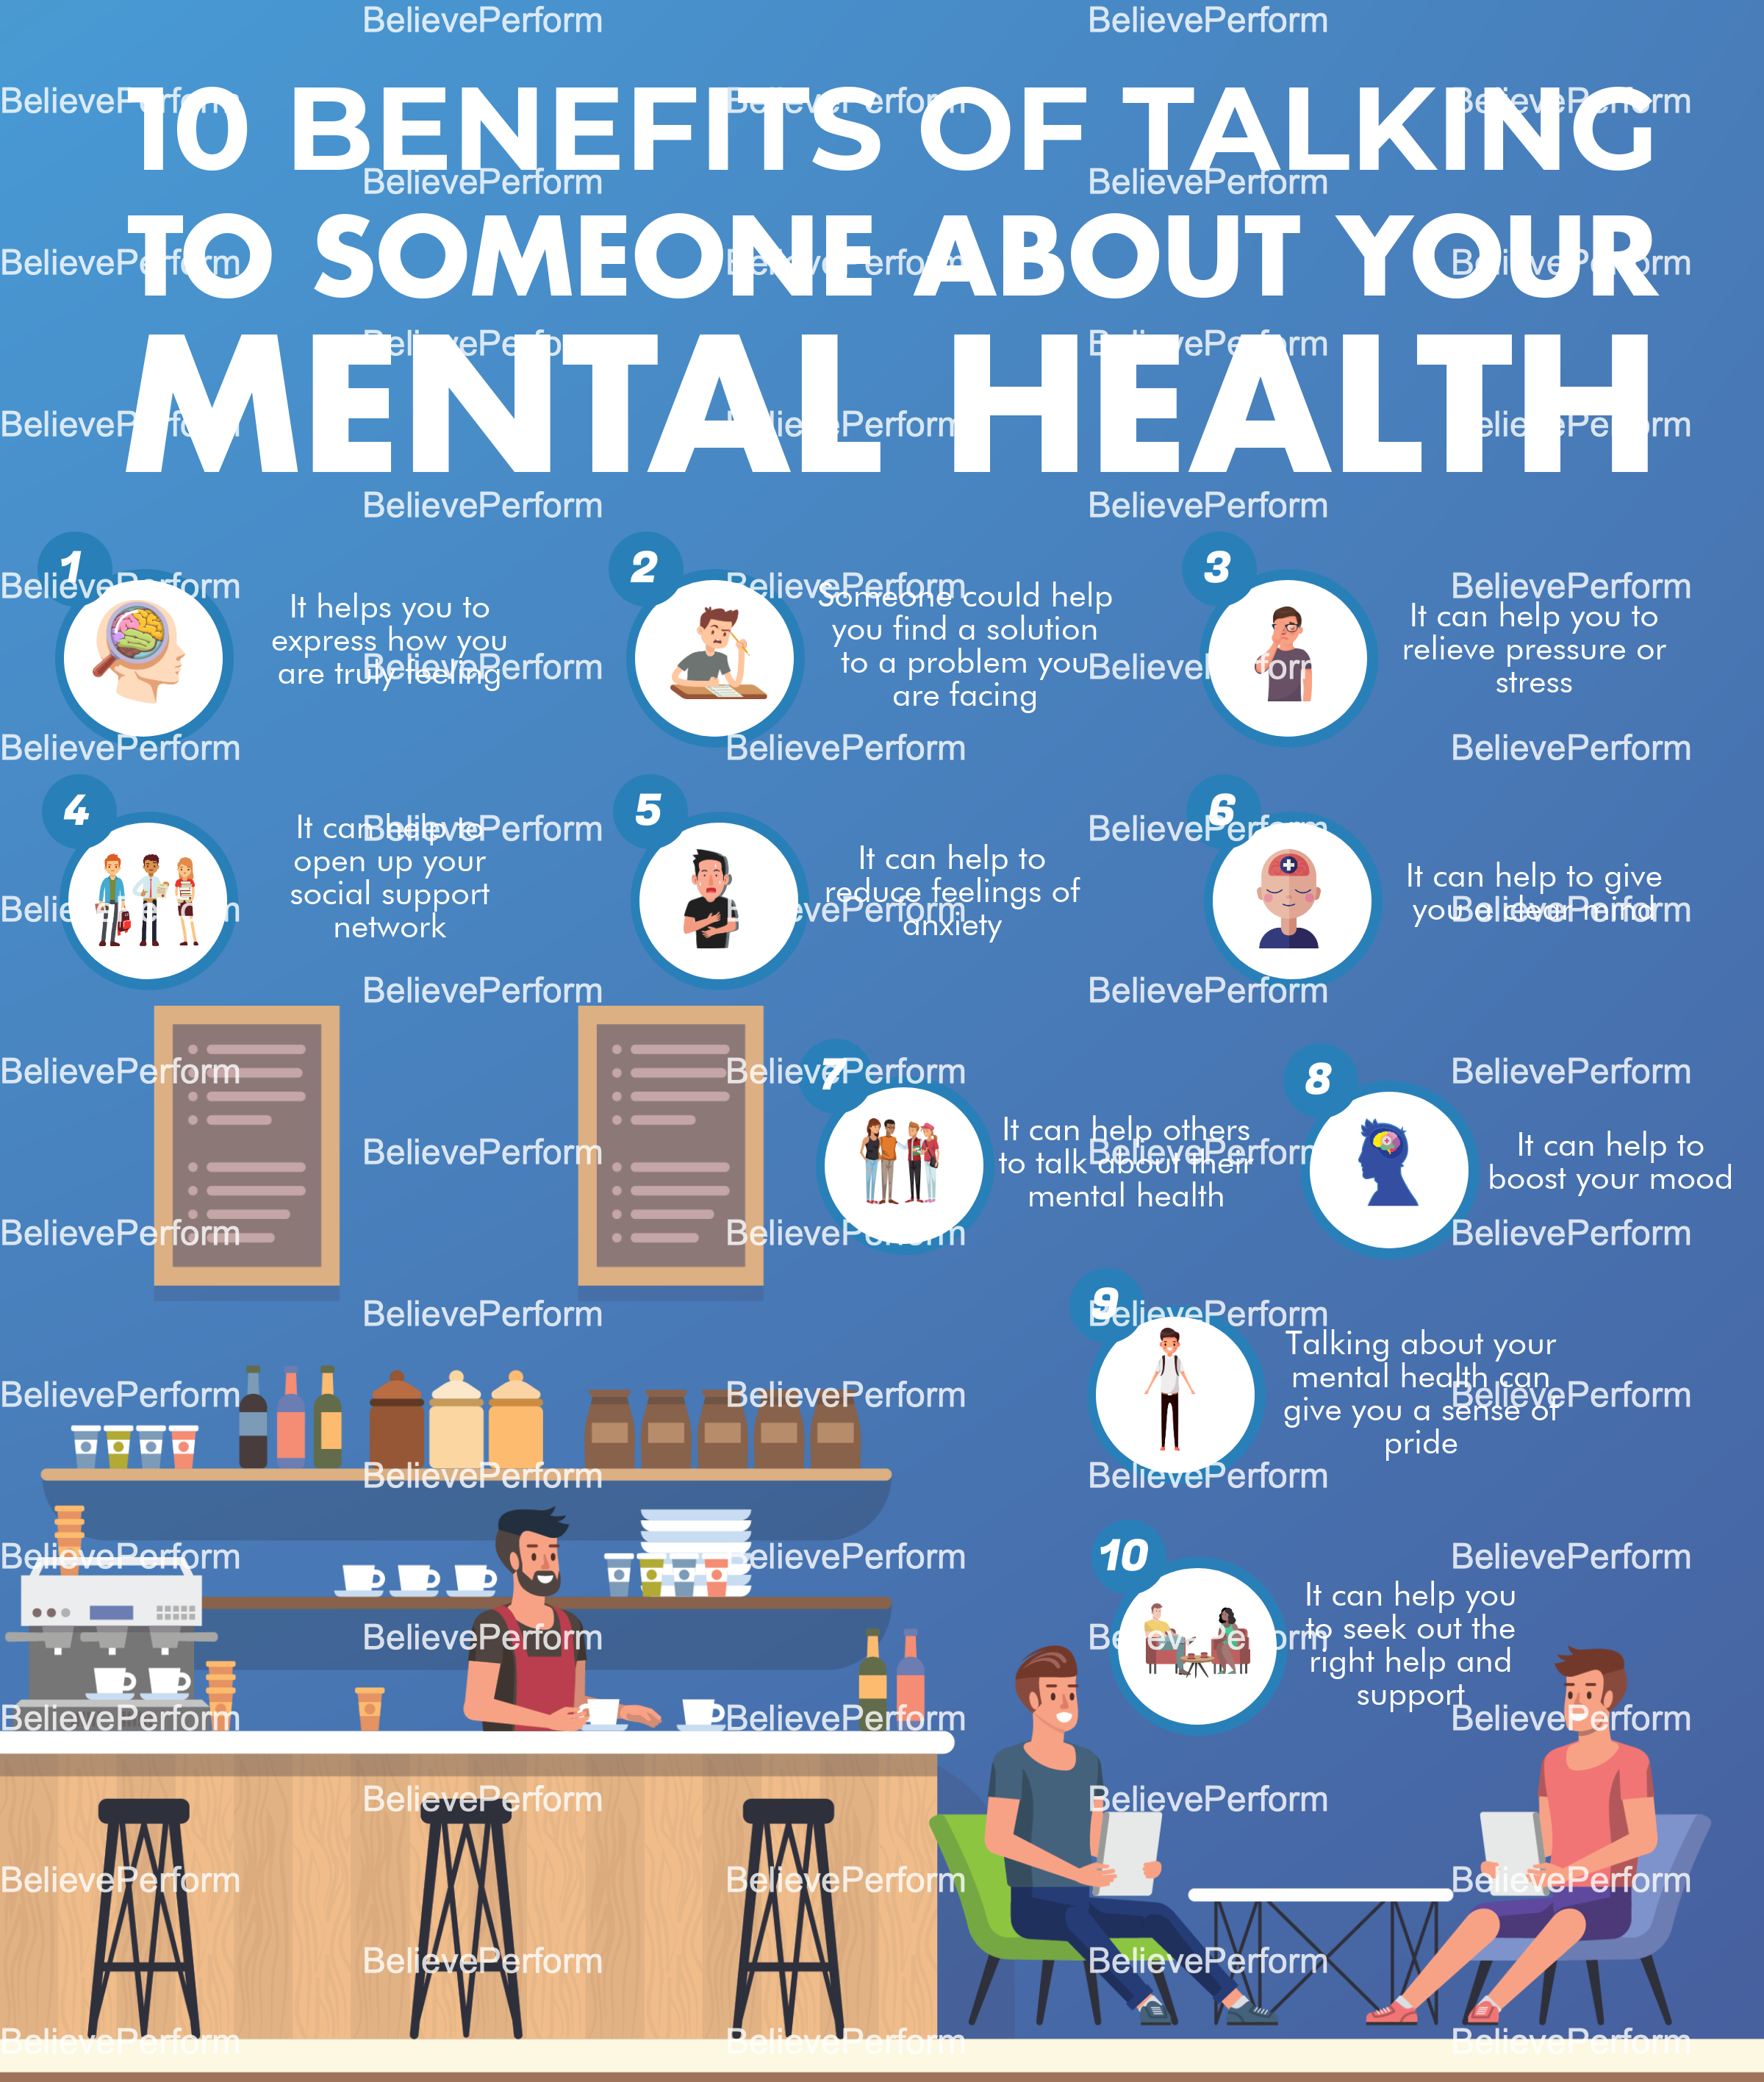 10 benefits of talking to someone about your mental health